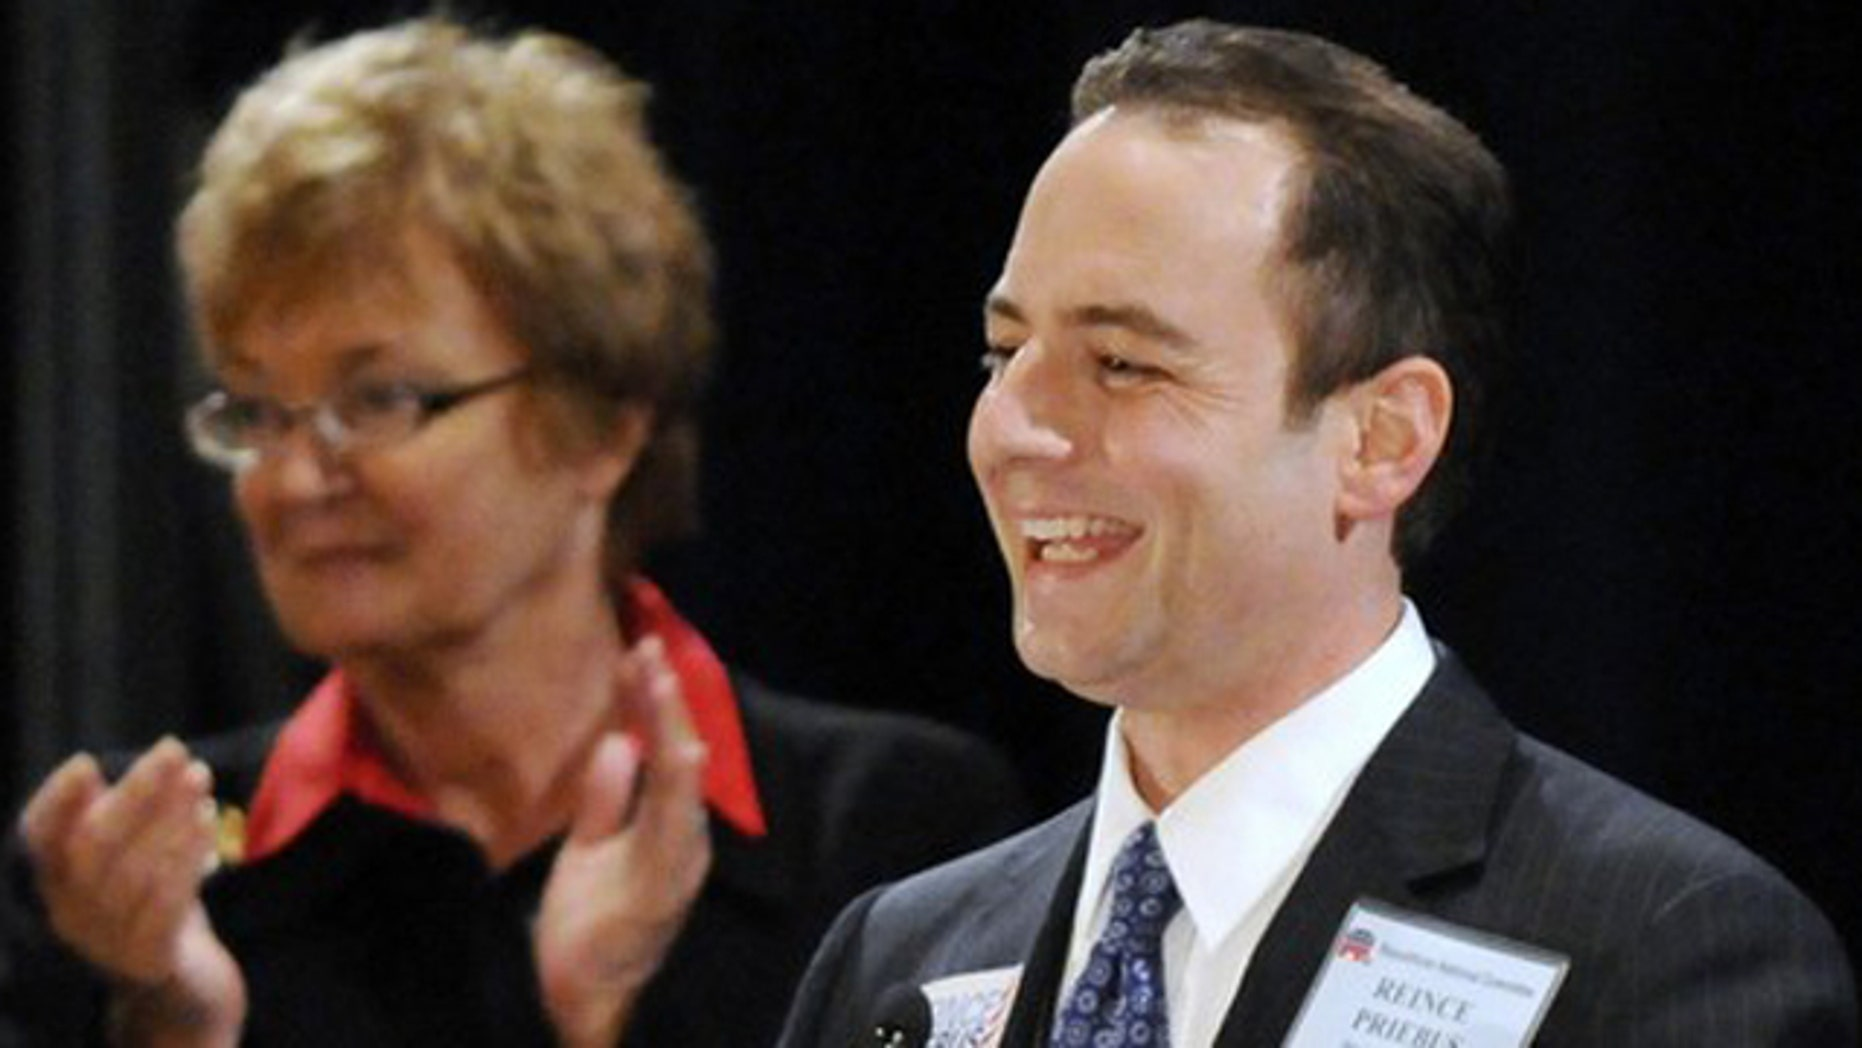 Jan. 14: Reince Priebus (R) of Wisconsin smiles as he makes remarks after being elected Republican National Committee chairman at the RNC winter meeting in National Harbor, Md.